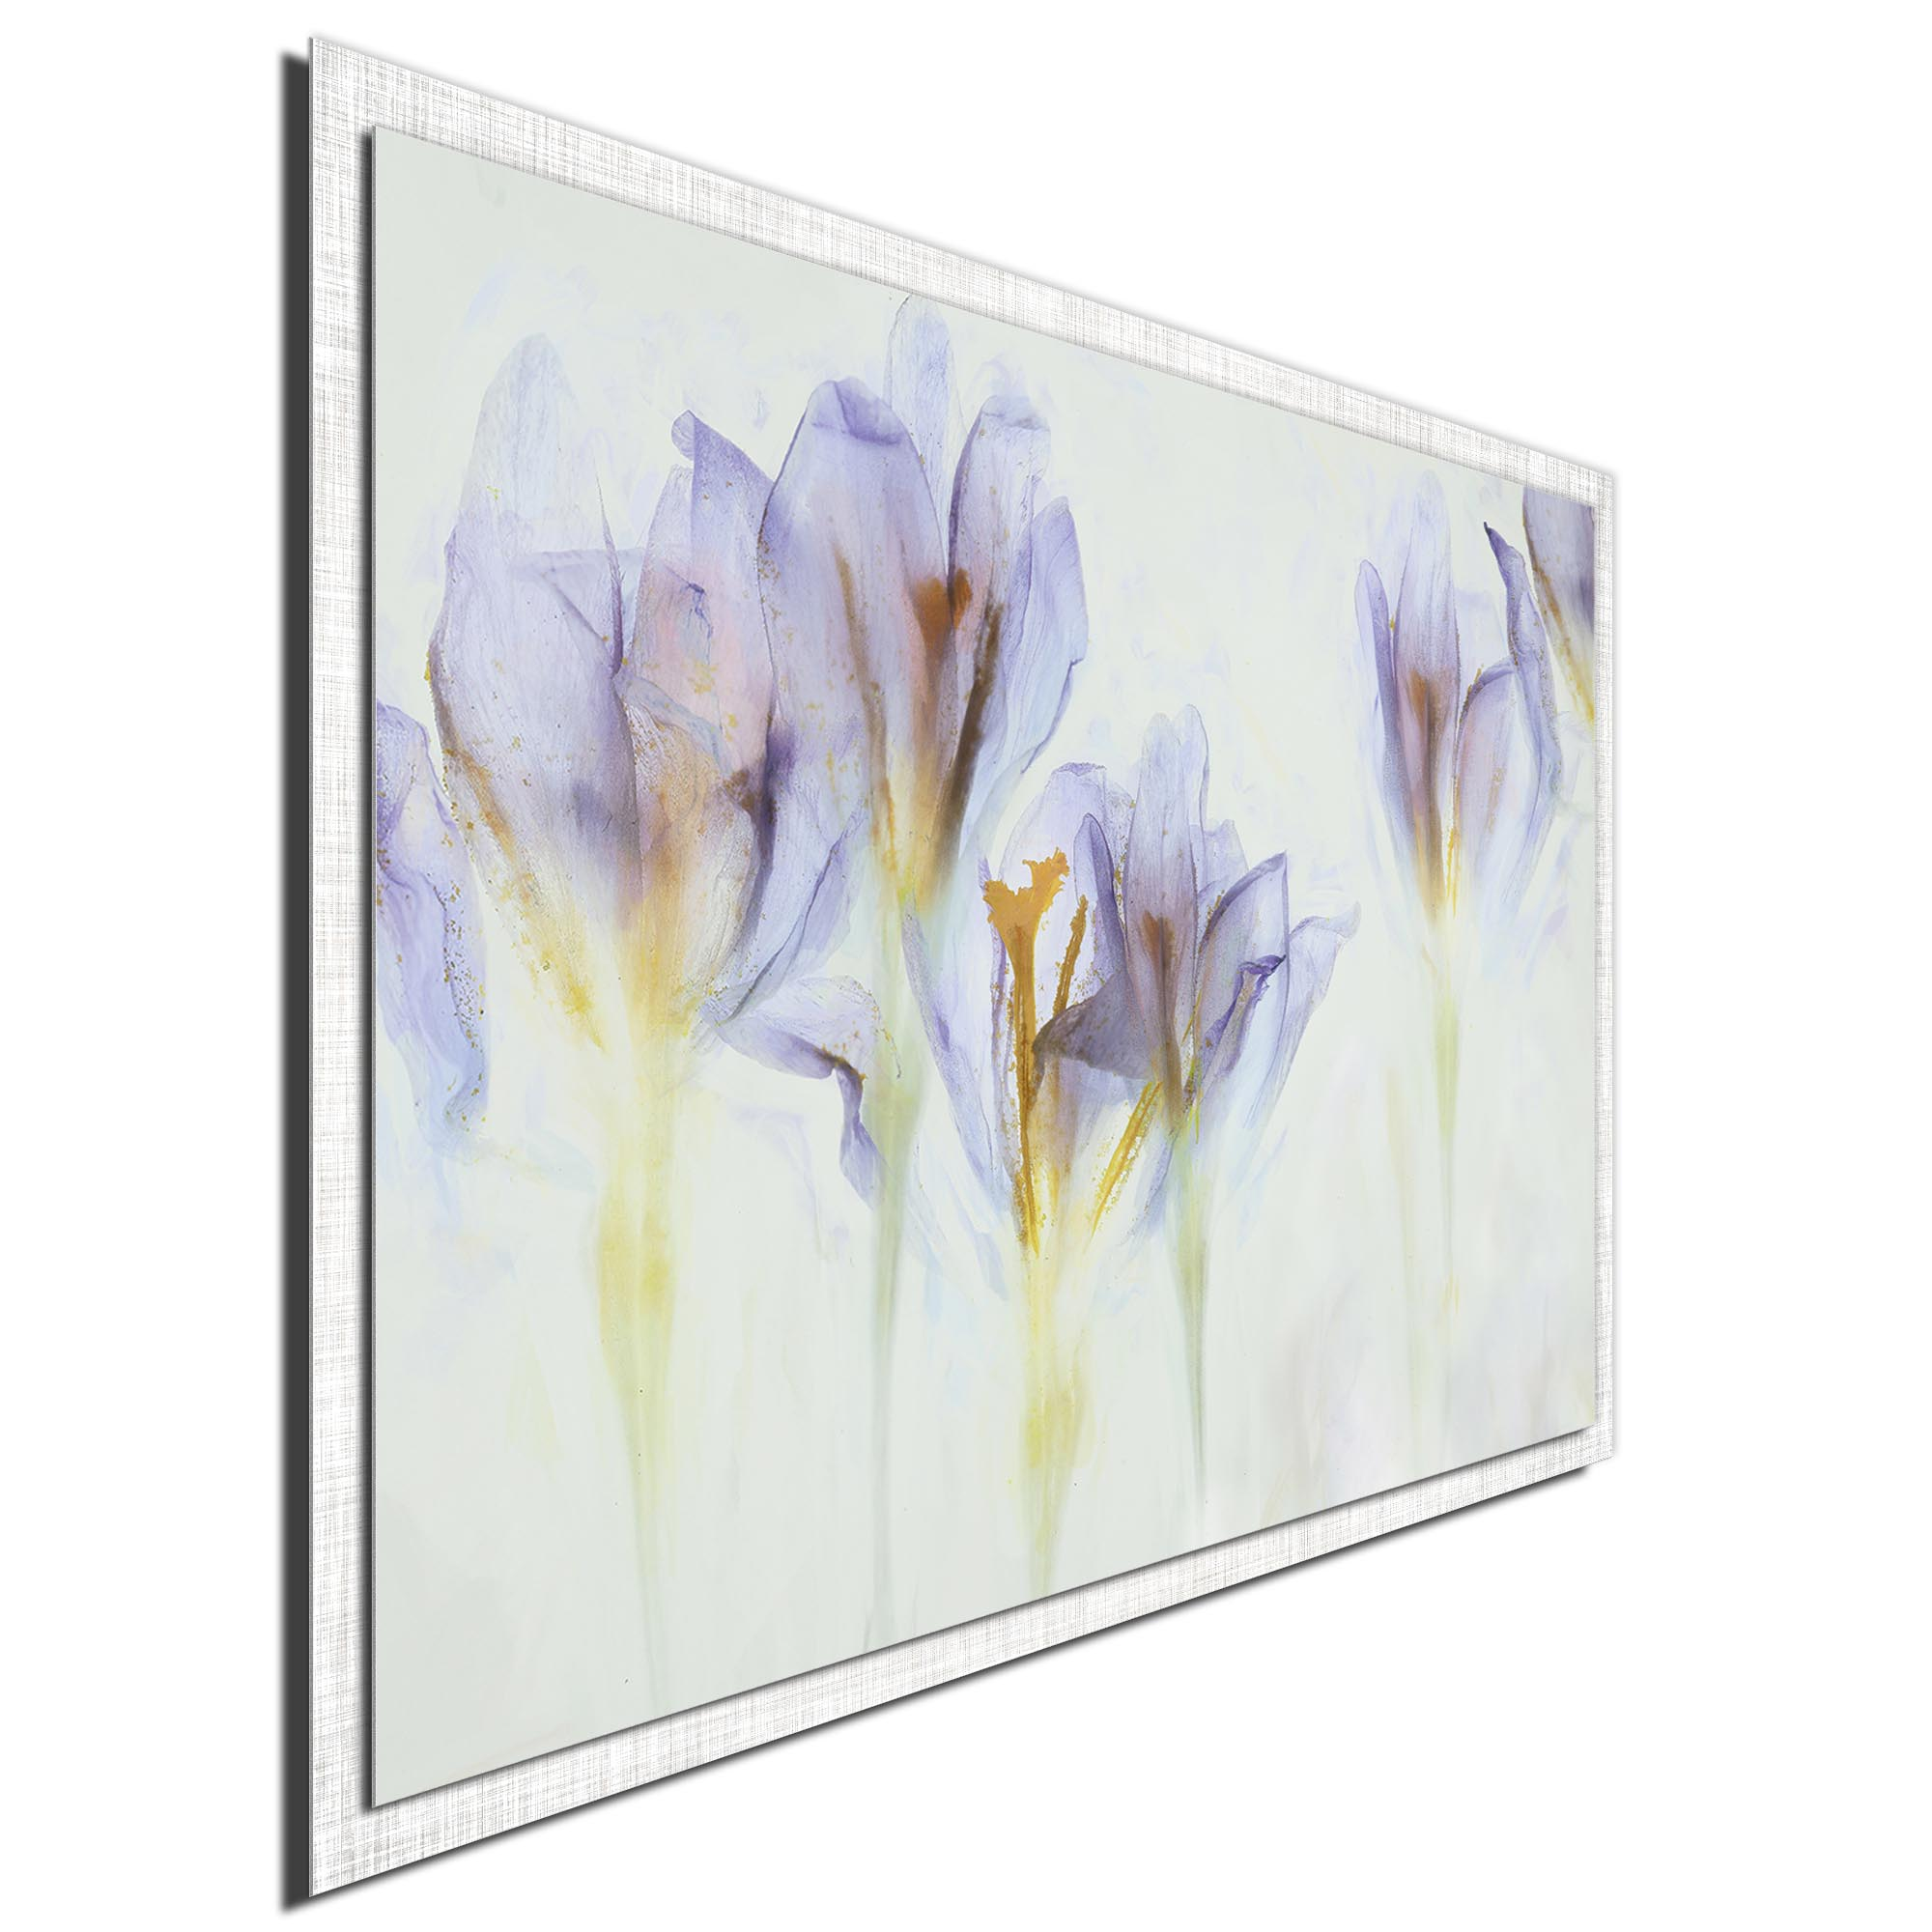 Spring by Nel Talen - Modern Farmhouse Floral on Metal - Image 2